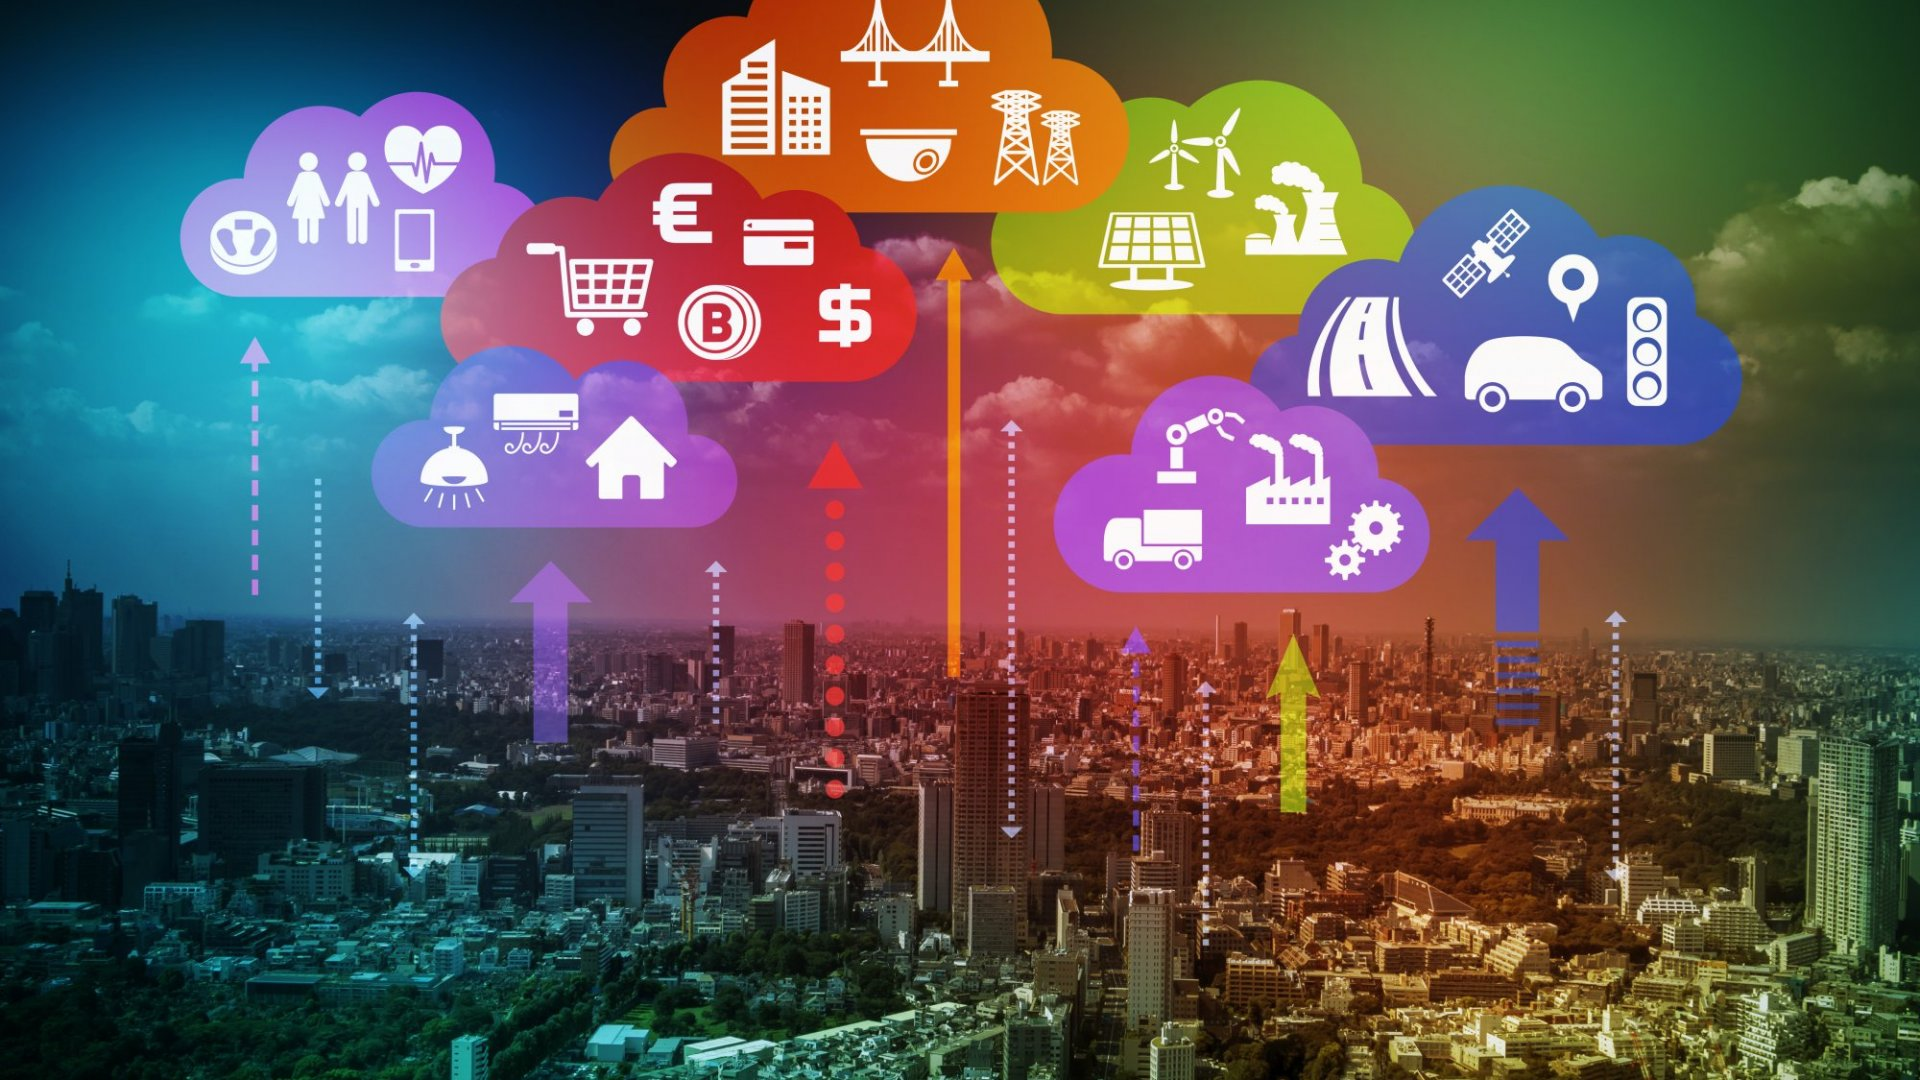 BlockchainIs Giving The 'Internet of Things'Space Another Boost